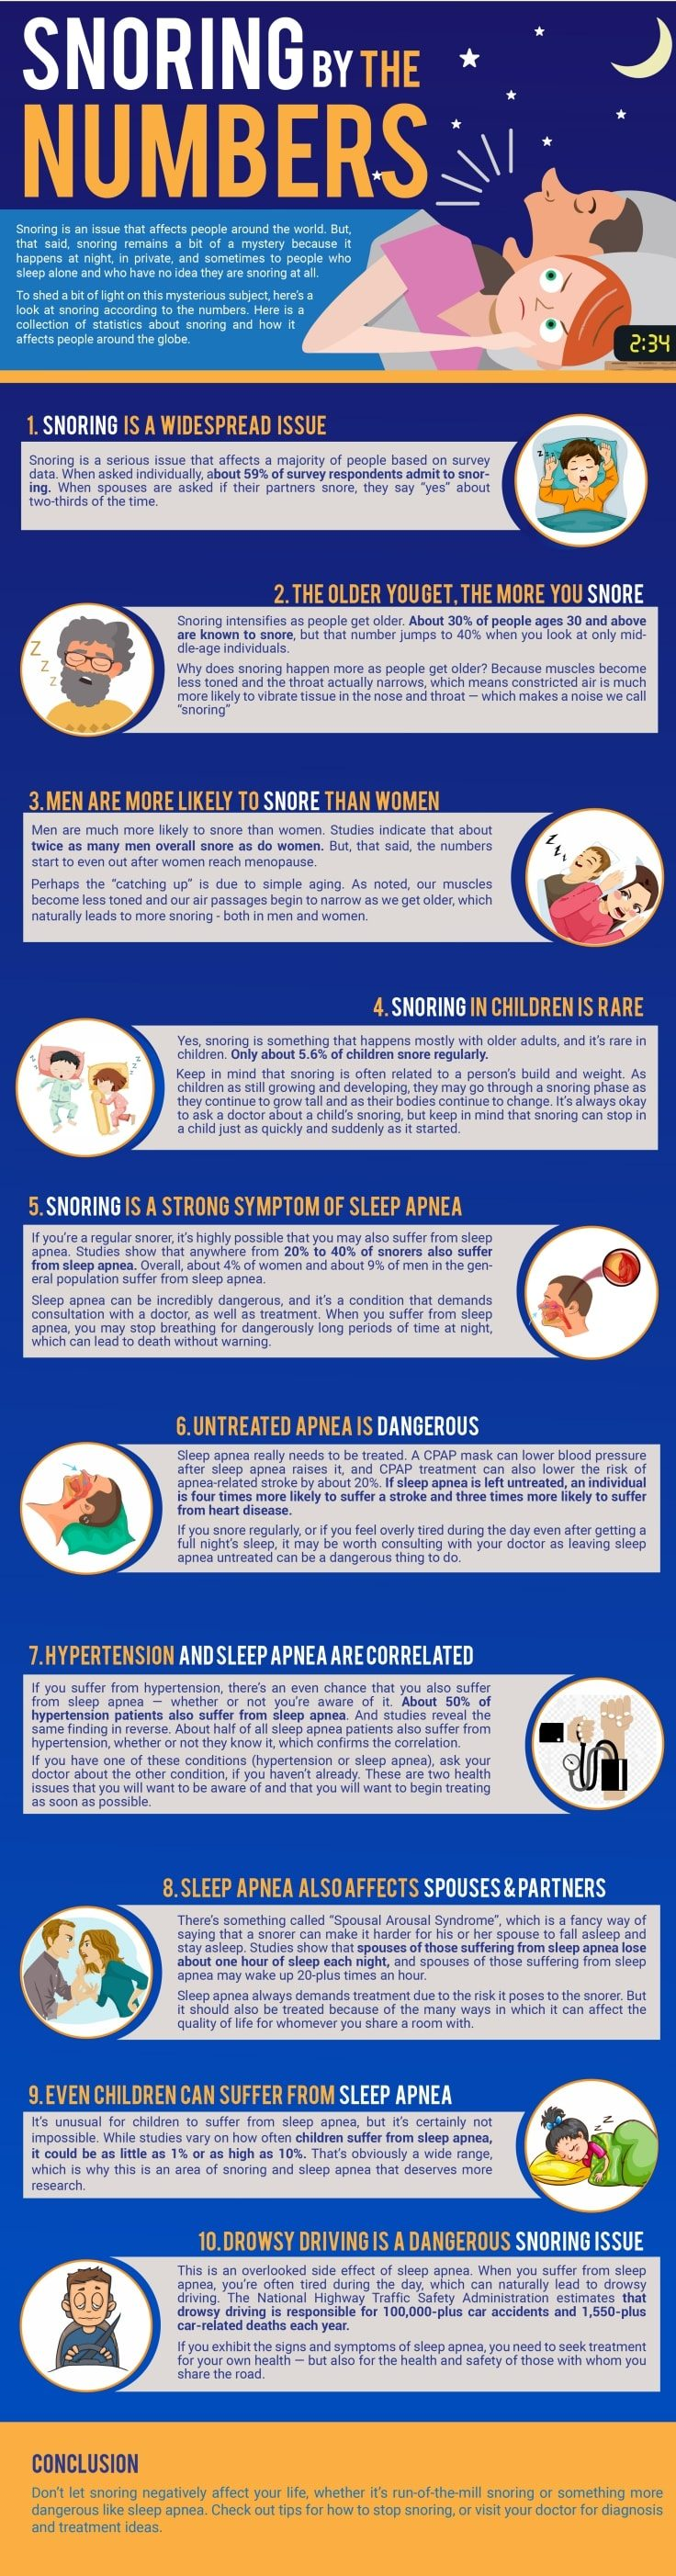 Snoring By The Numbers Infographic